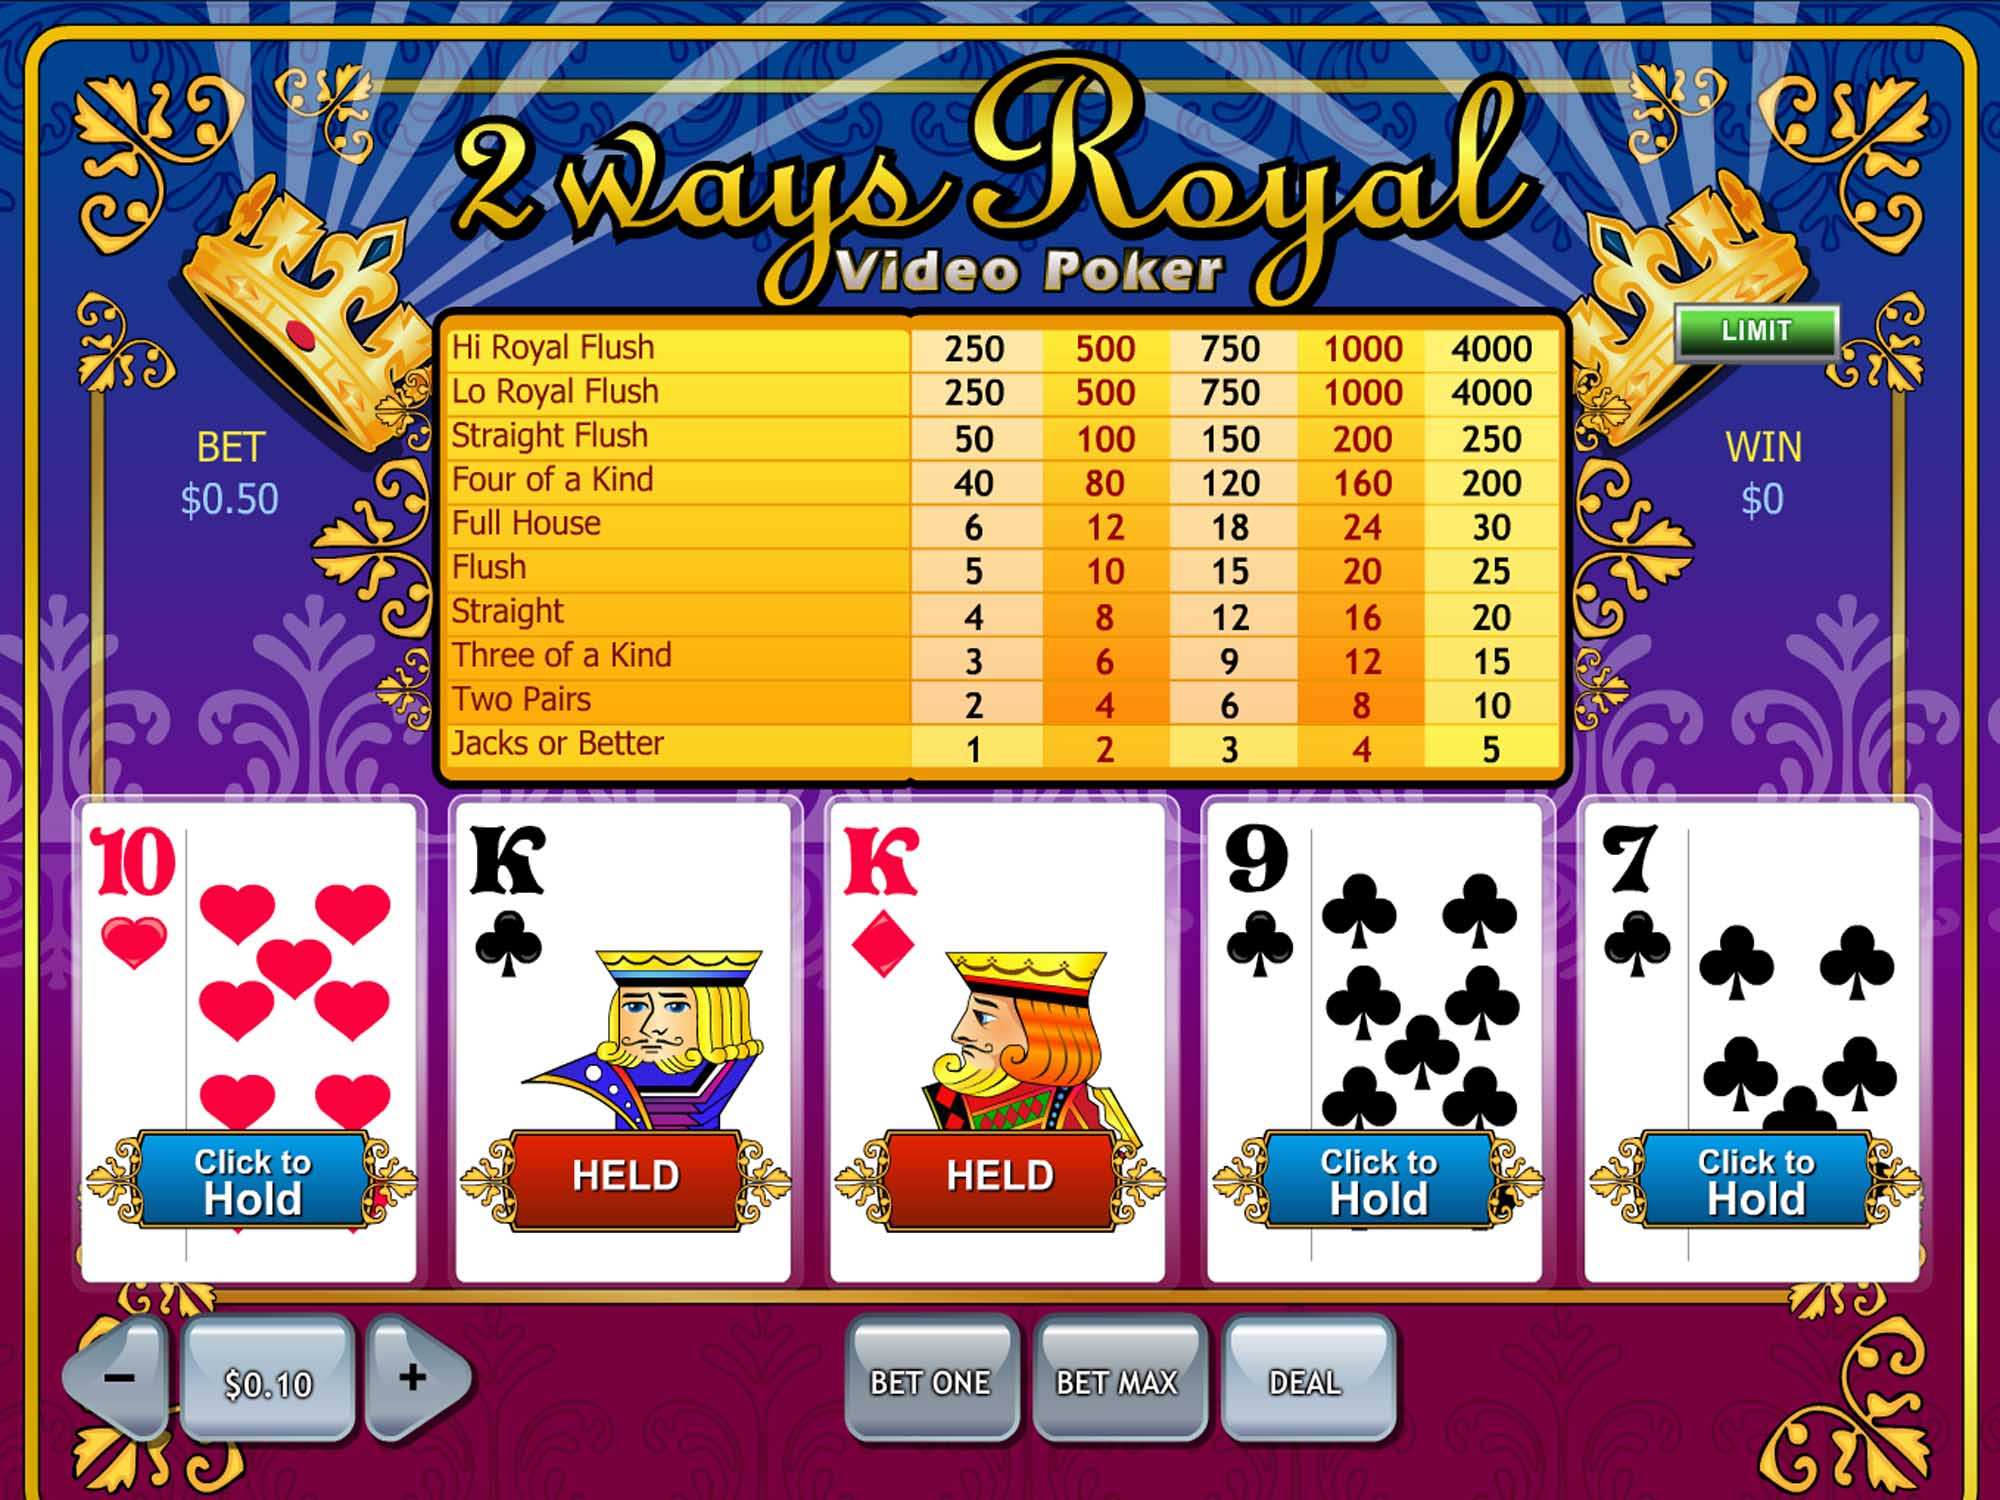 Playtech 2 Ways Royal Video Poker screenshot